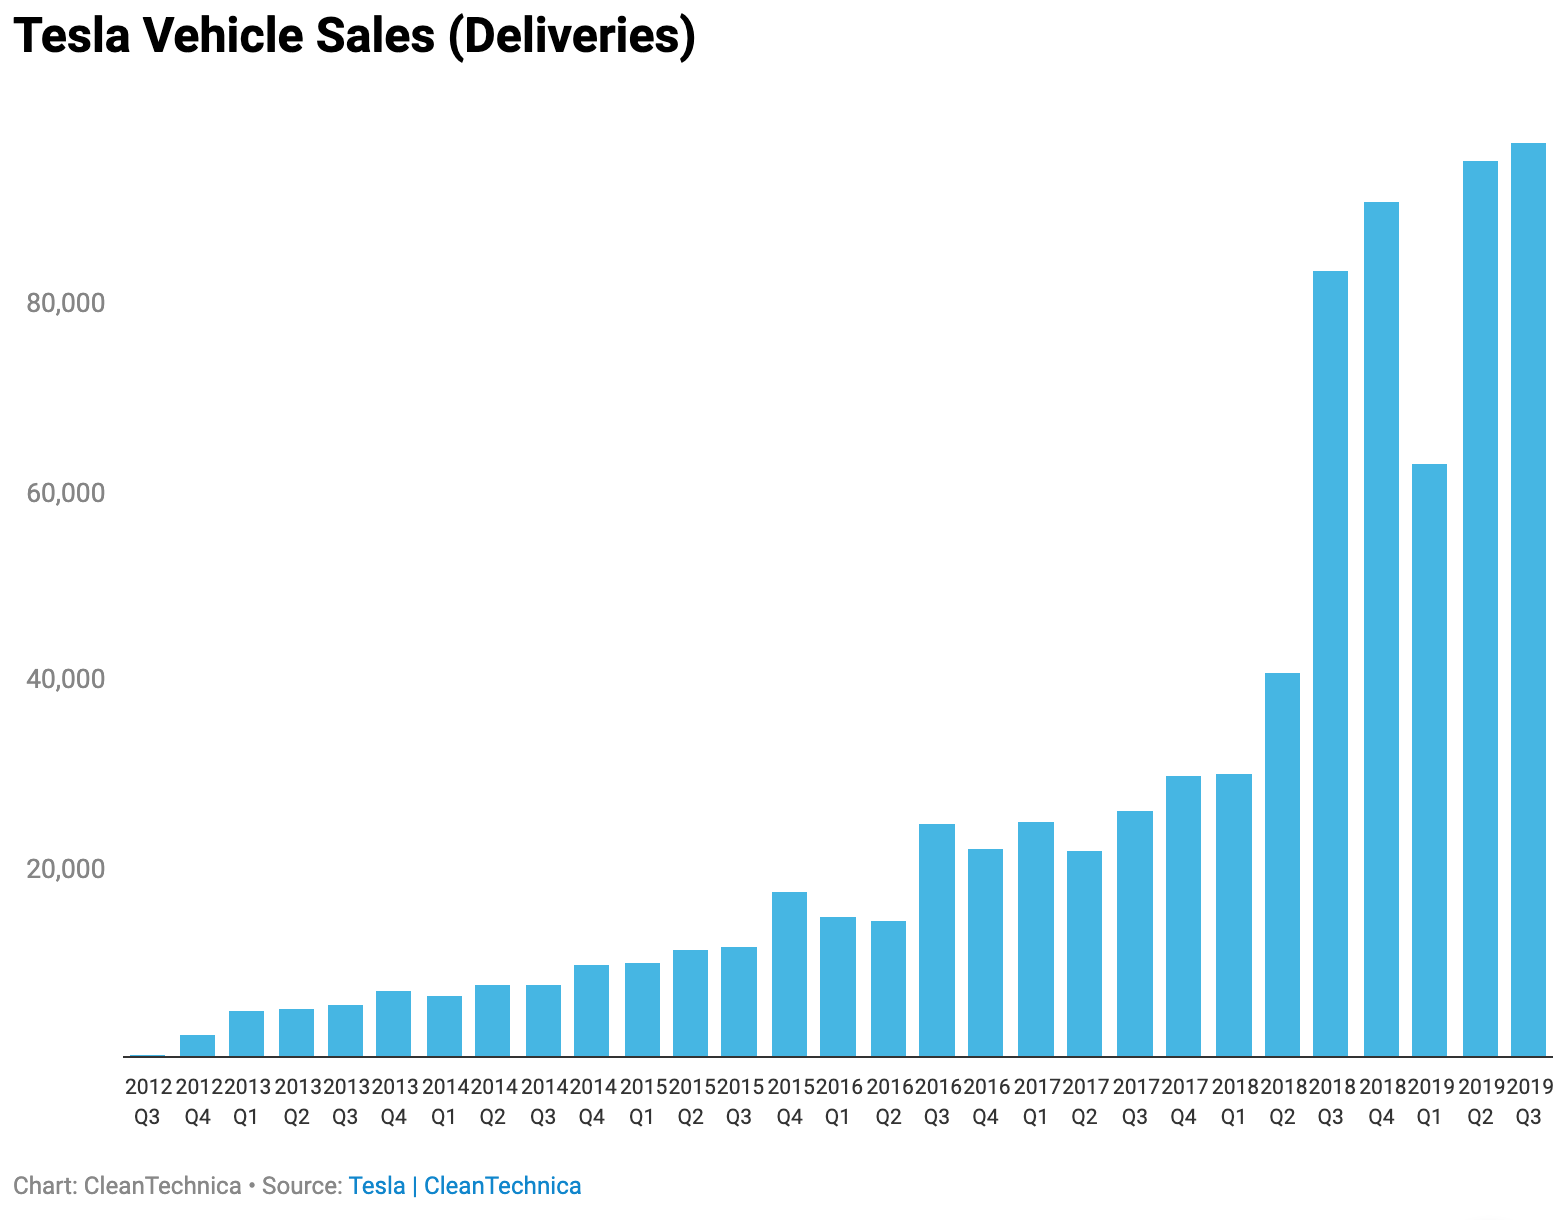 Chart: Tesal Vehicle Sales (Deliveries)